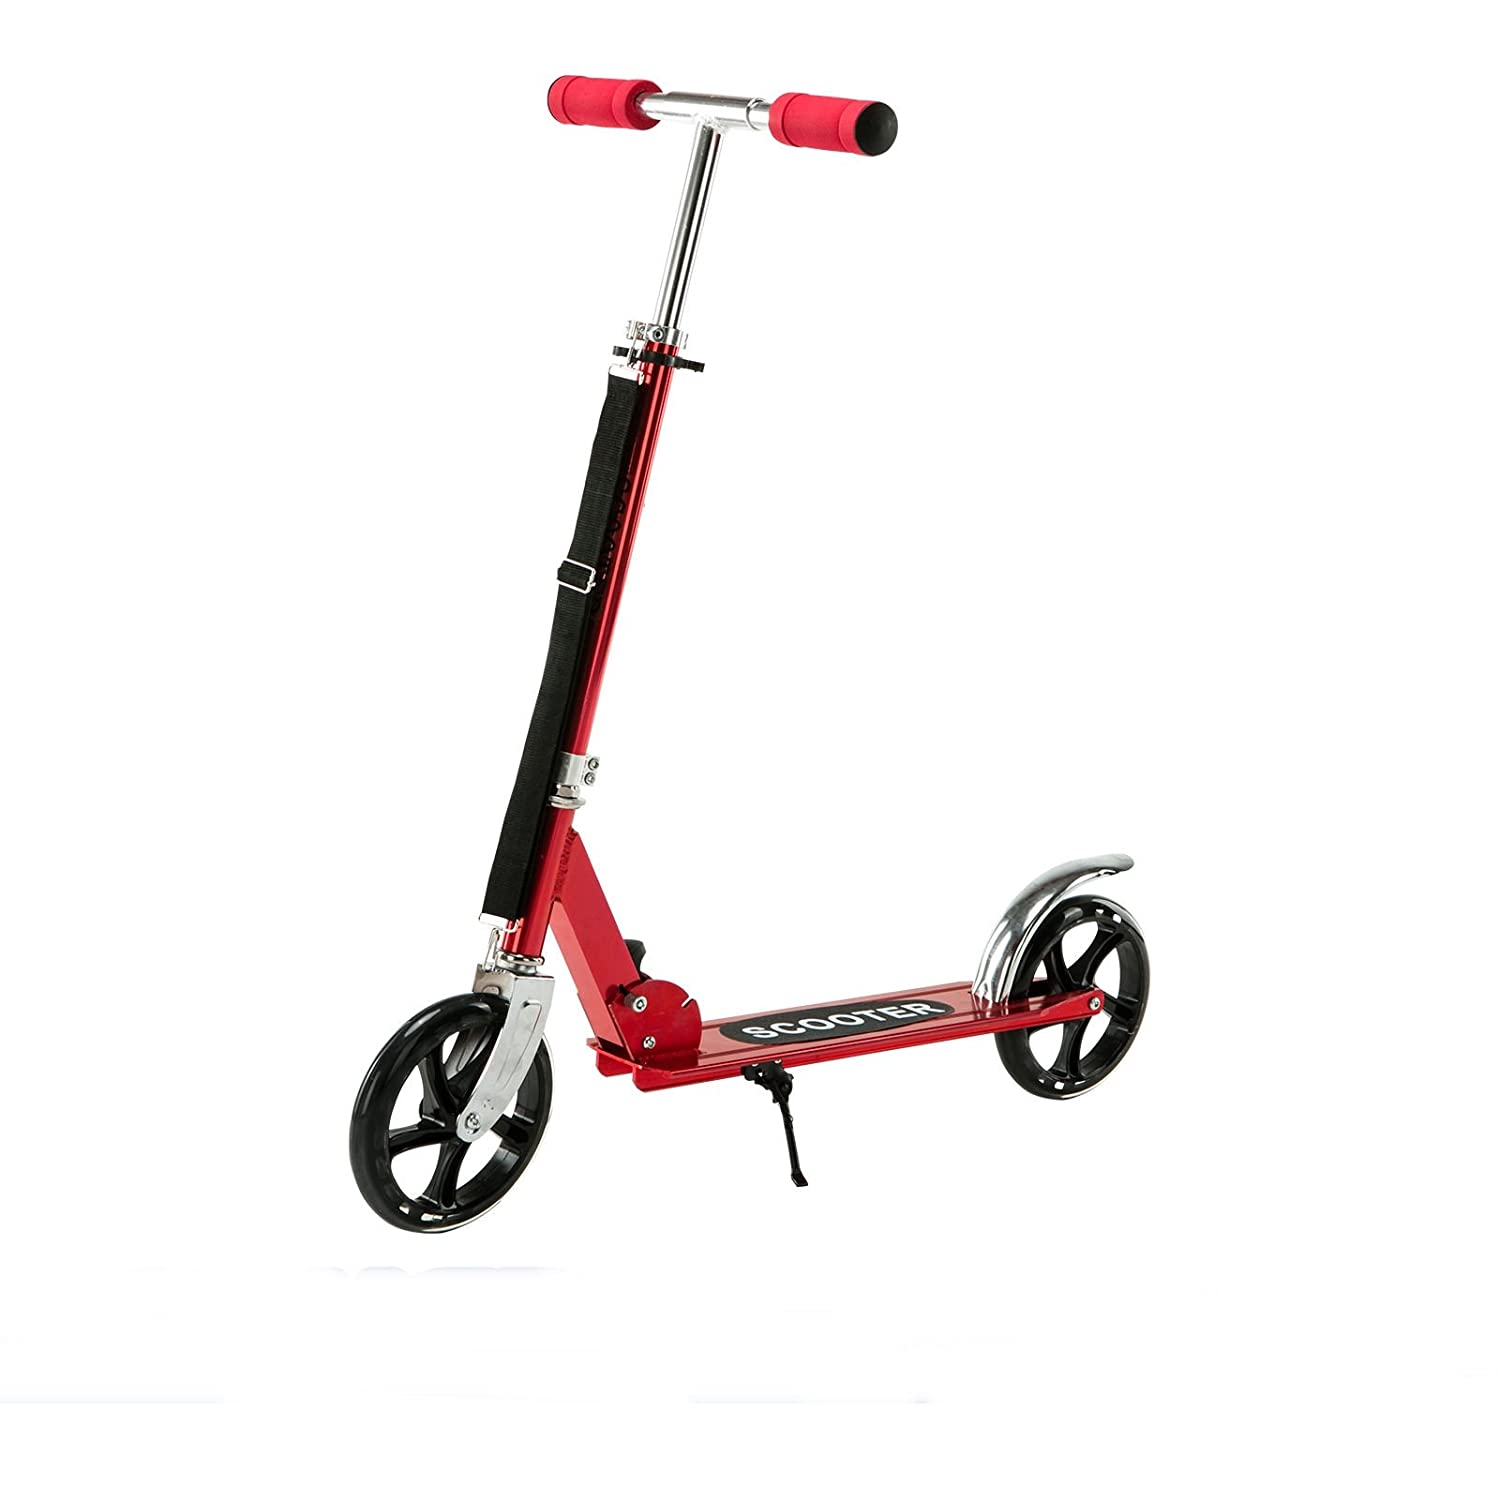 Red exercise scooter folding outdoor kid adult ride sport kick scooter 2 wheels